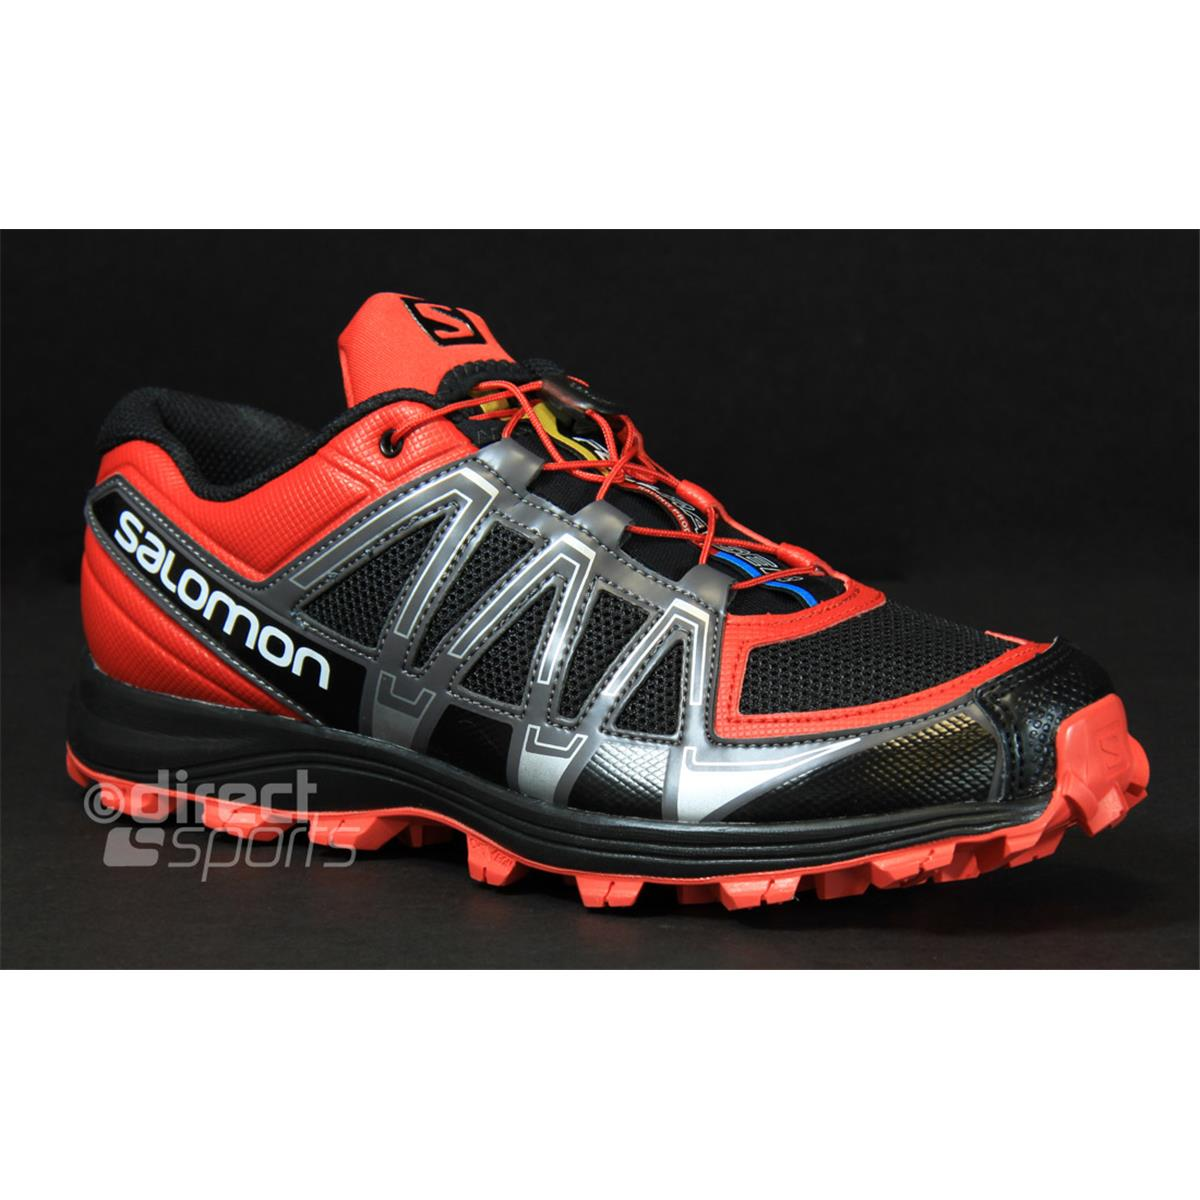 Netherlands Mens Salomon Fell Raiser - Dssport Running Mens Running Shoes Salomon Salomon Fellraiser Mens Running Shoes (black Bright Red) Productid 3d18323